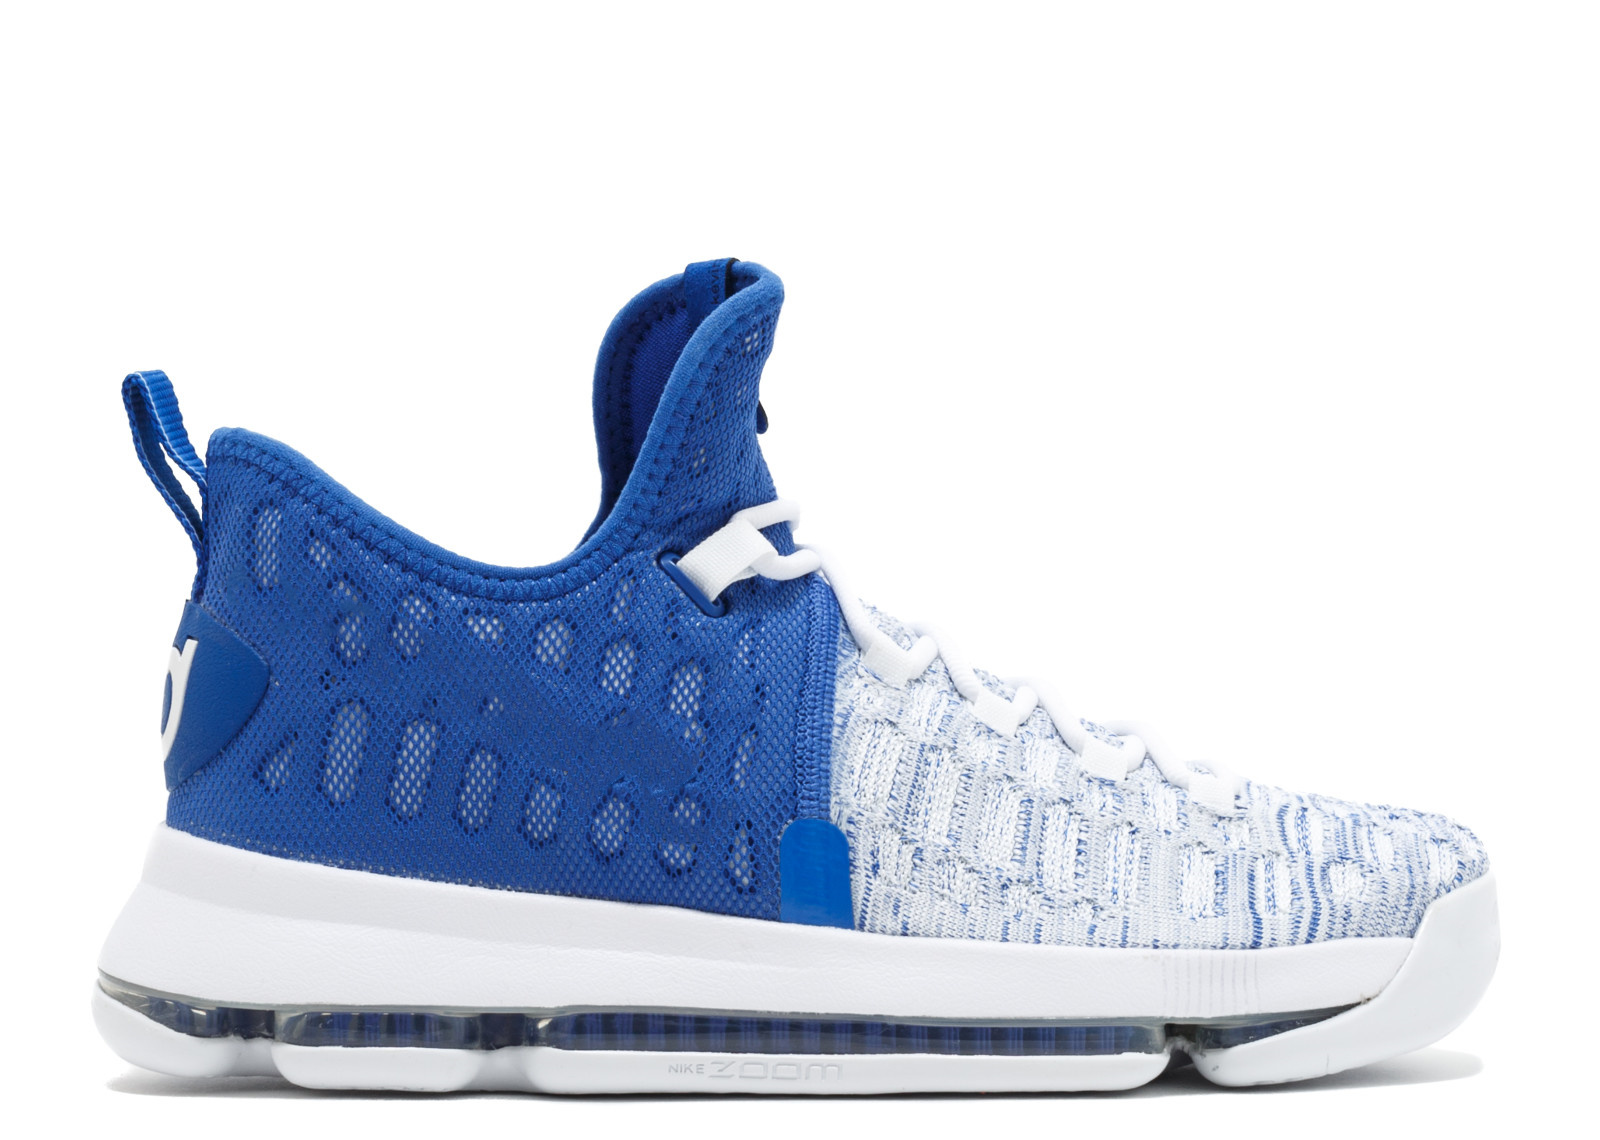 Kevin Durant Zoom Kd 9 Shoes Basketball